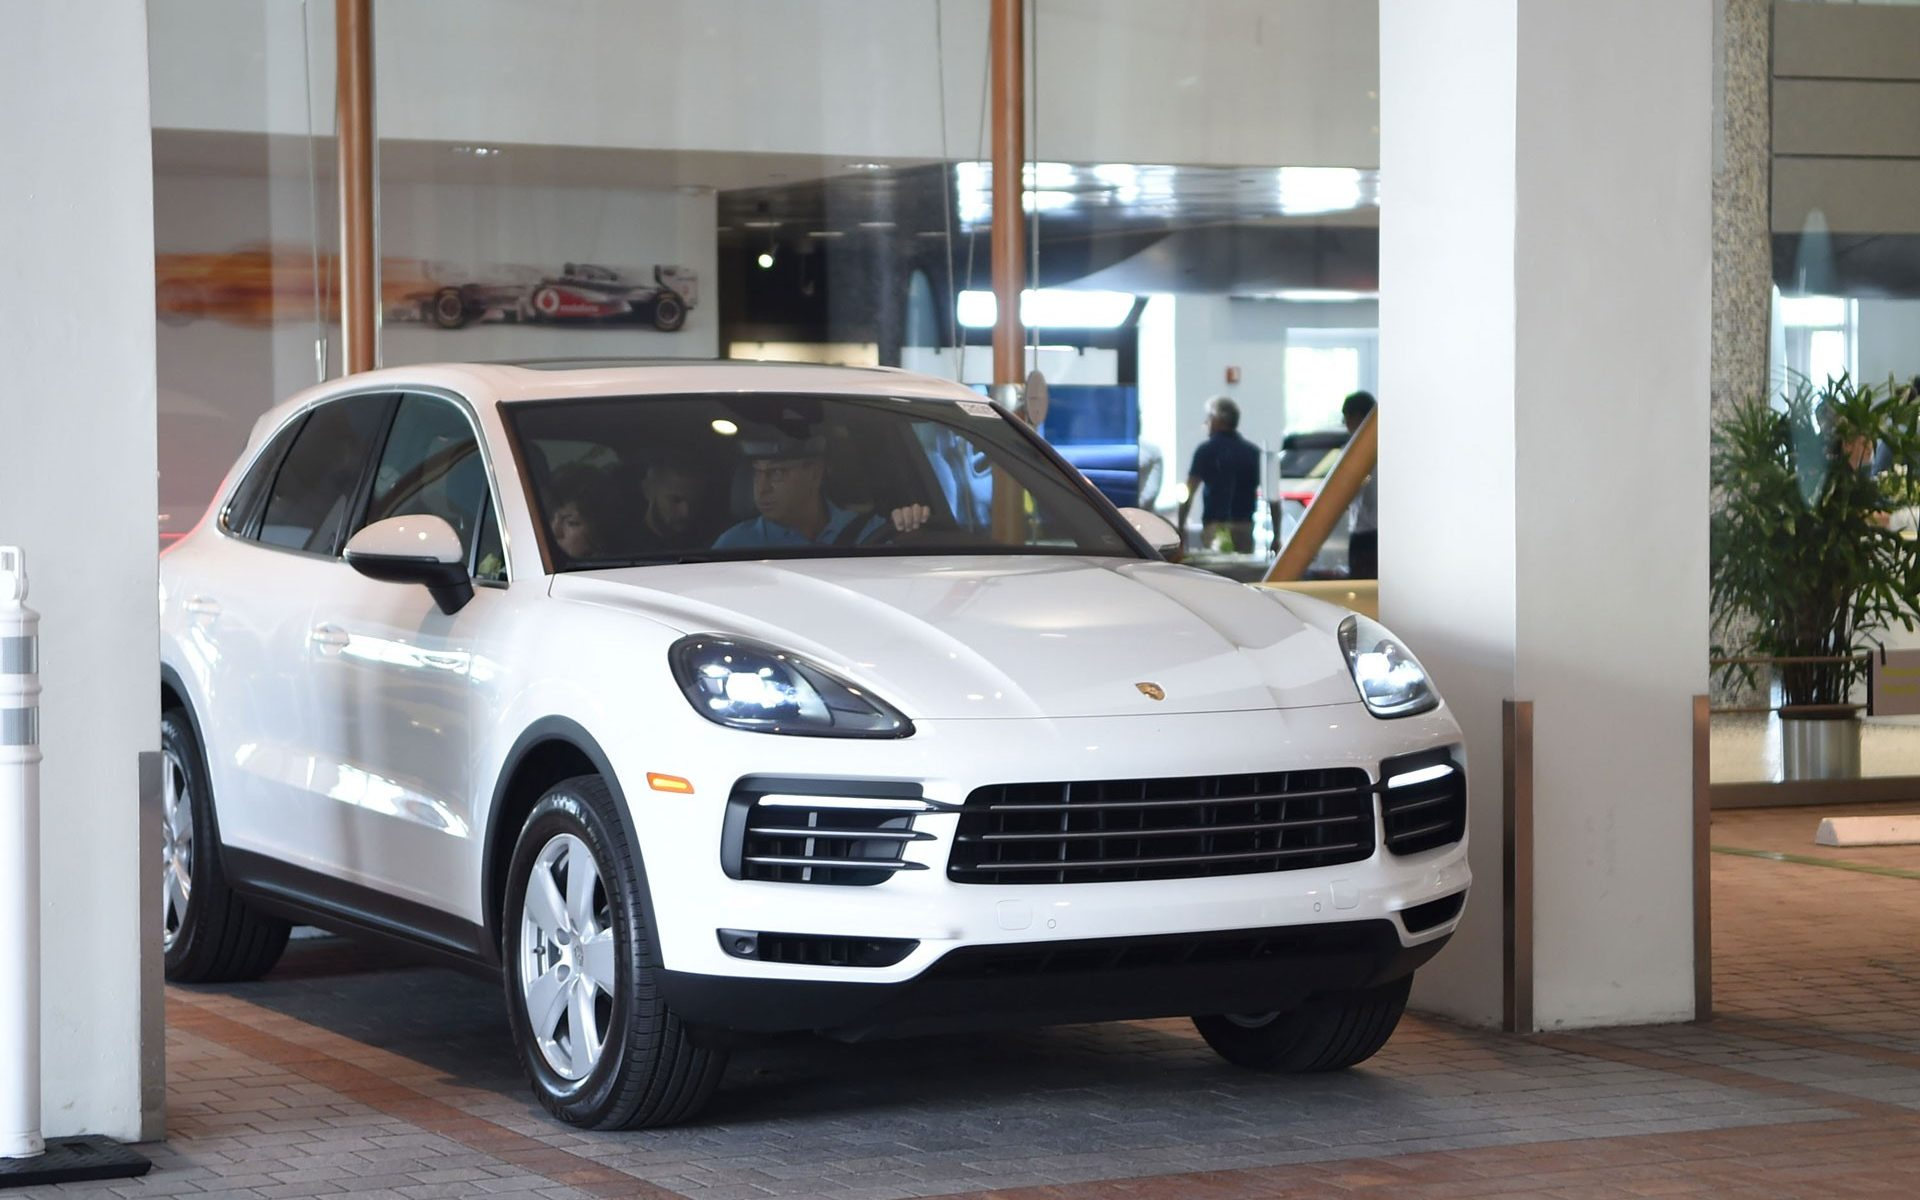 The Porsche Cayenne Is The Suv Sports Car Of The Summer Kenneth Gorin